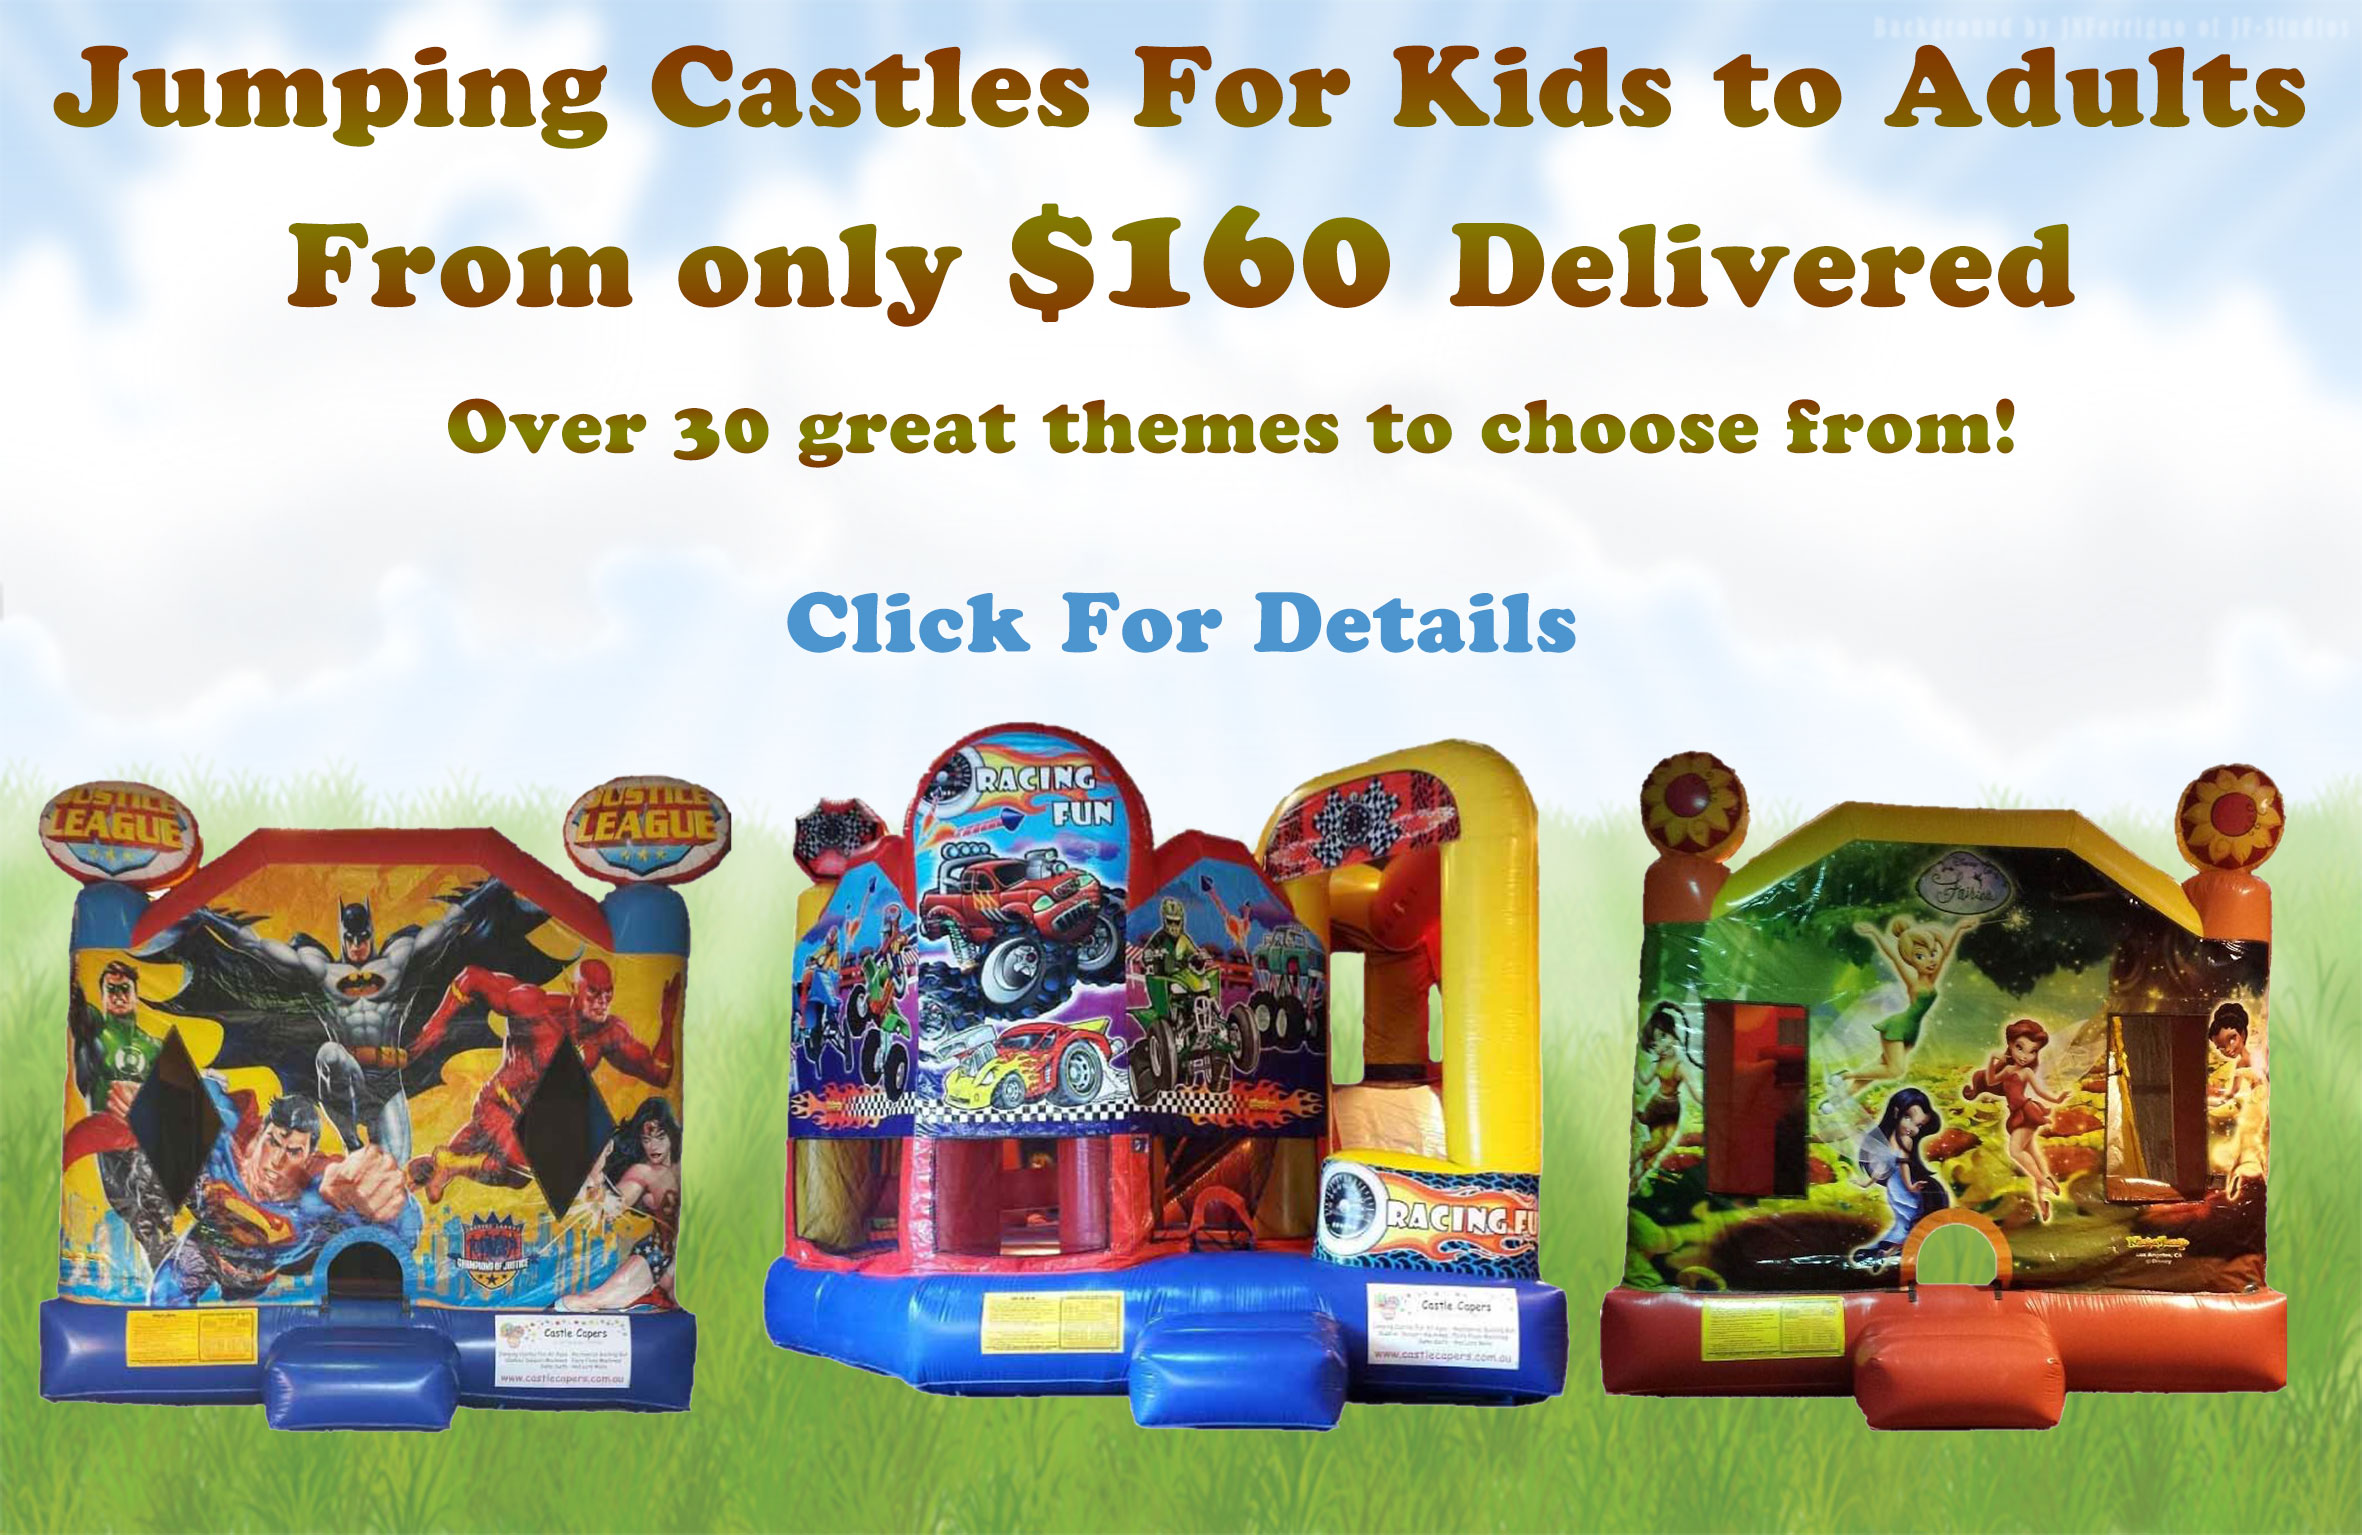 Jumping Castles for hire from Castle Capers